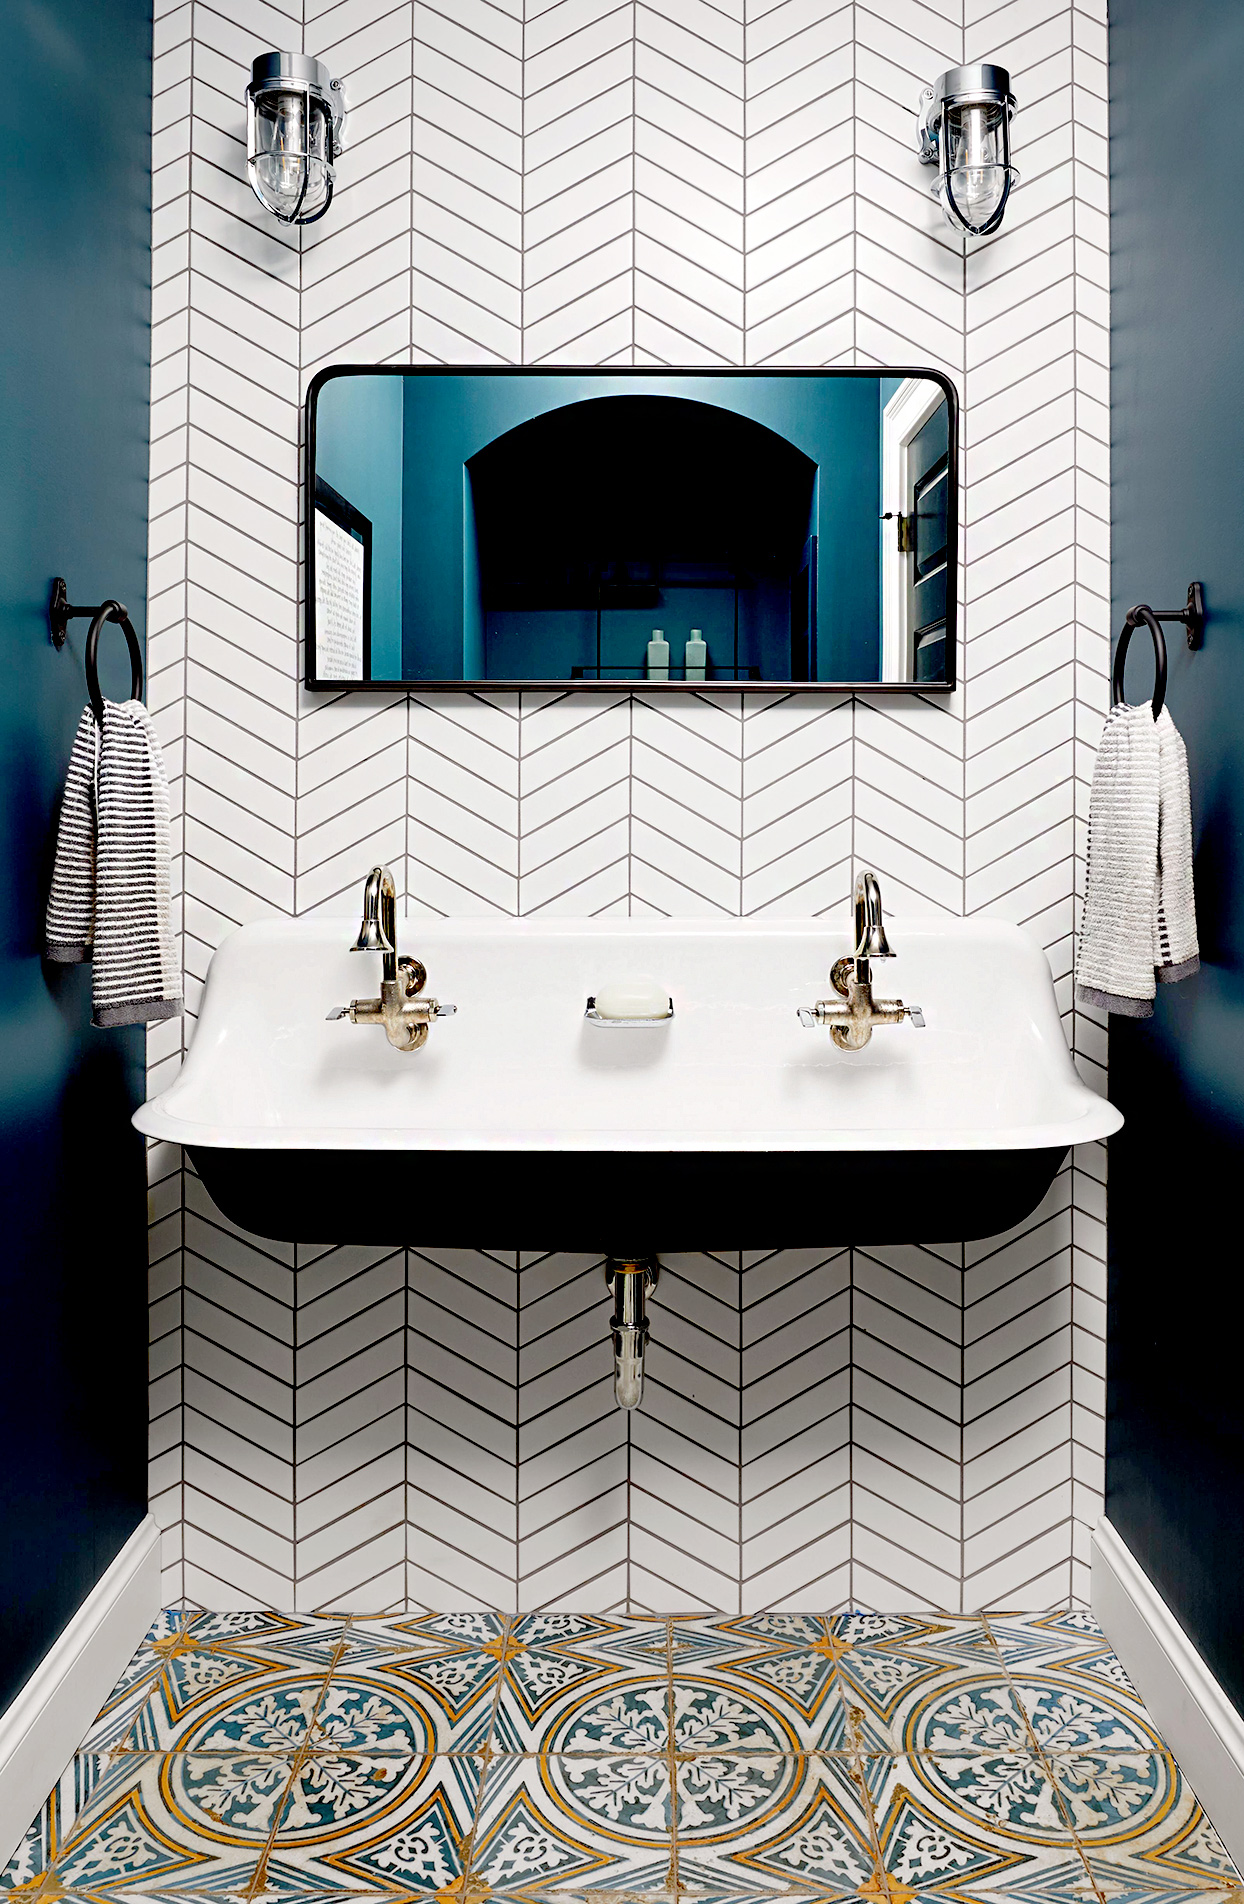 Double sink with geometric wallpaper